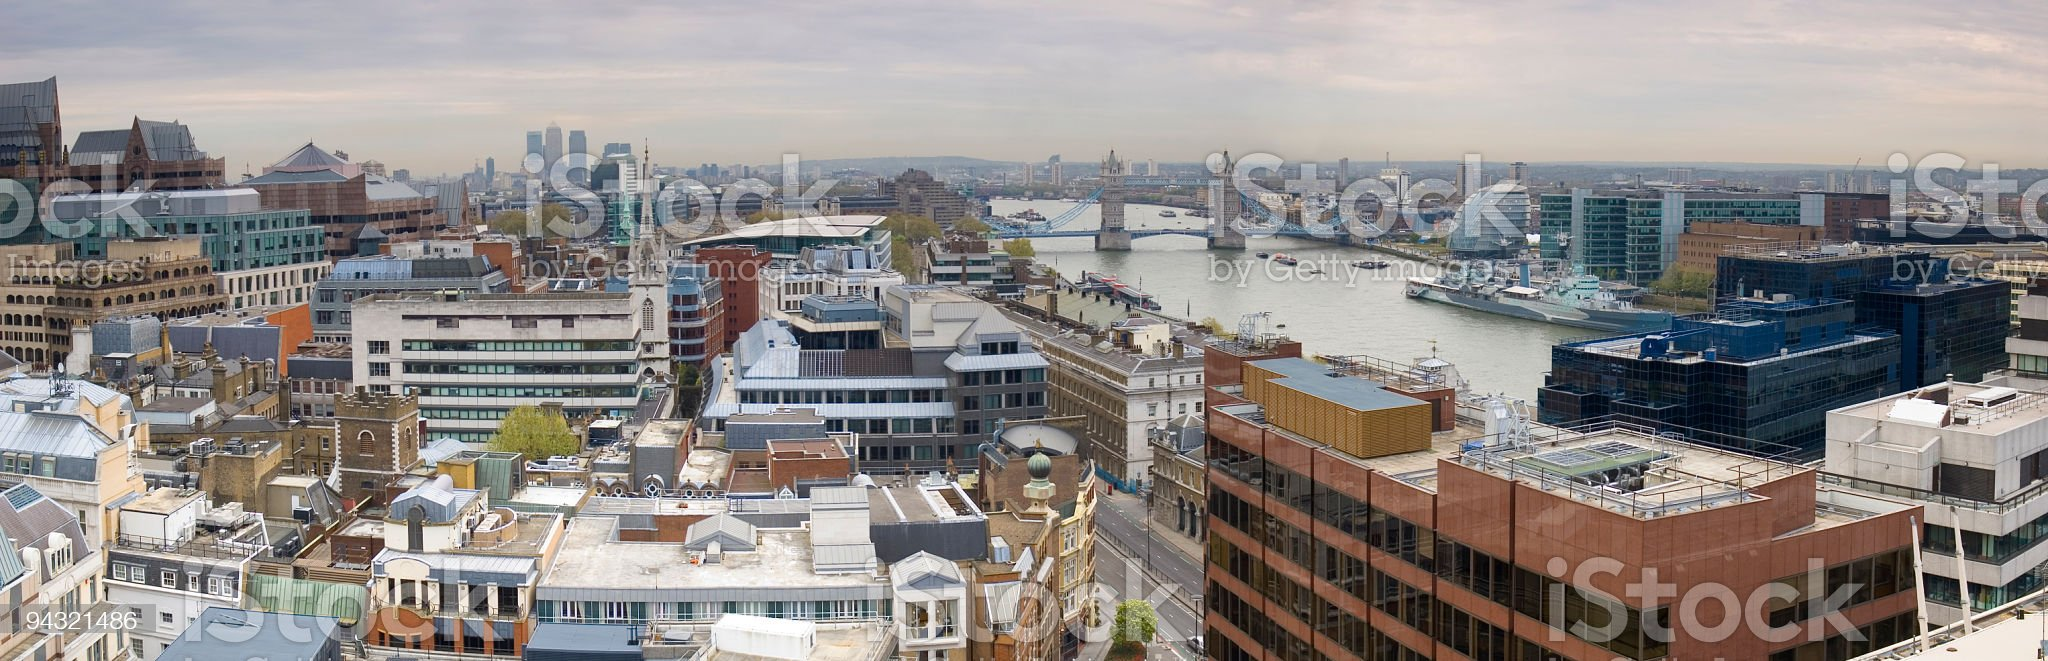 City of London and Tower Bridge royalty-free stock photo